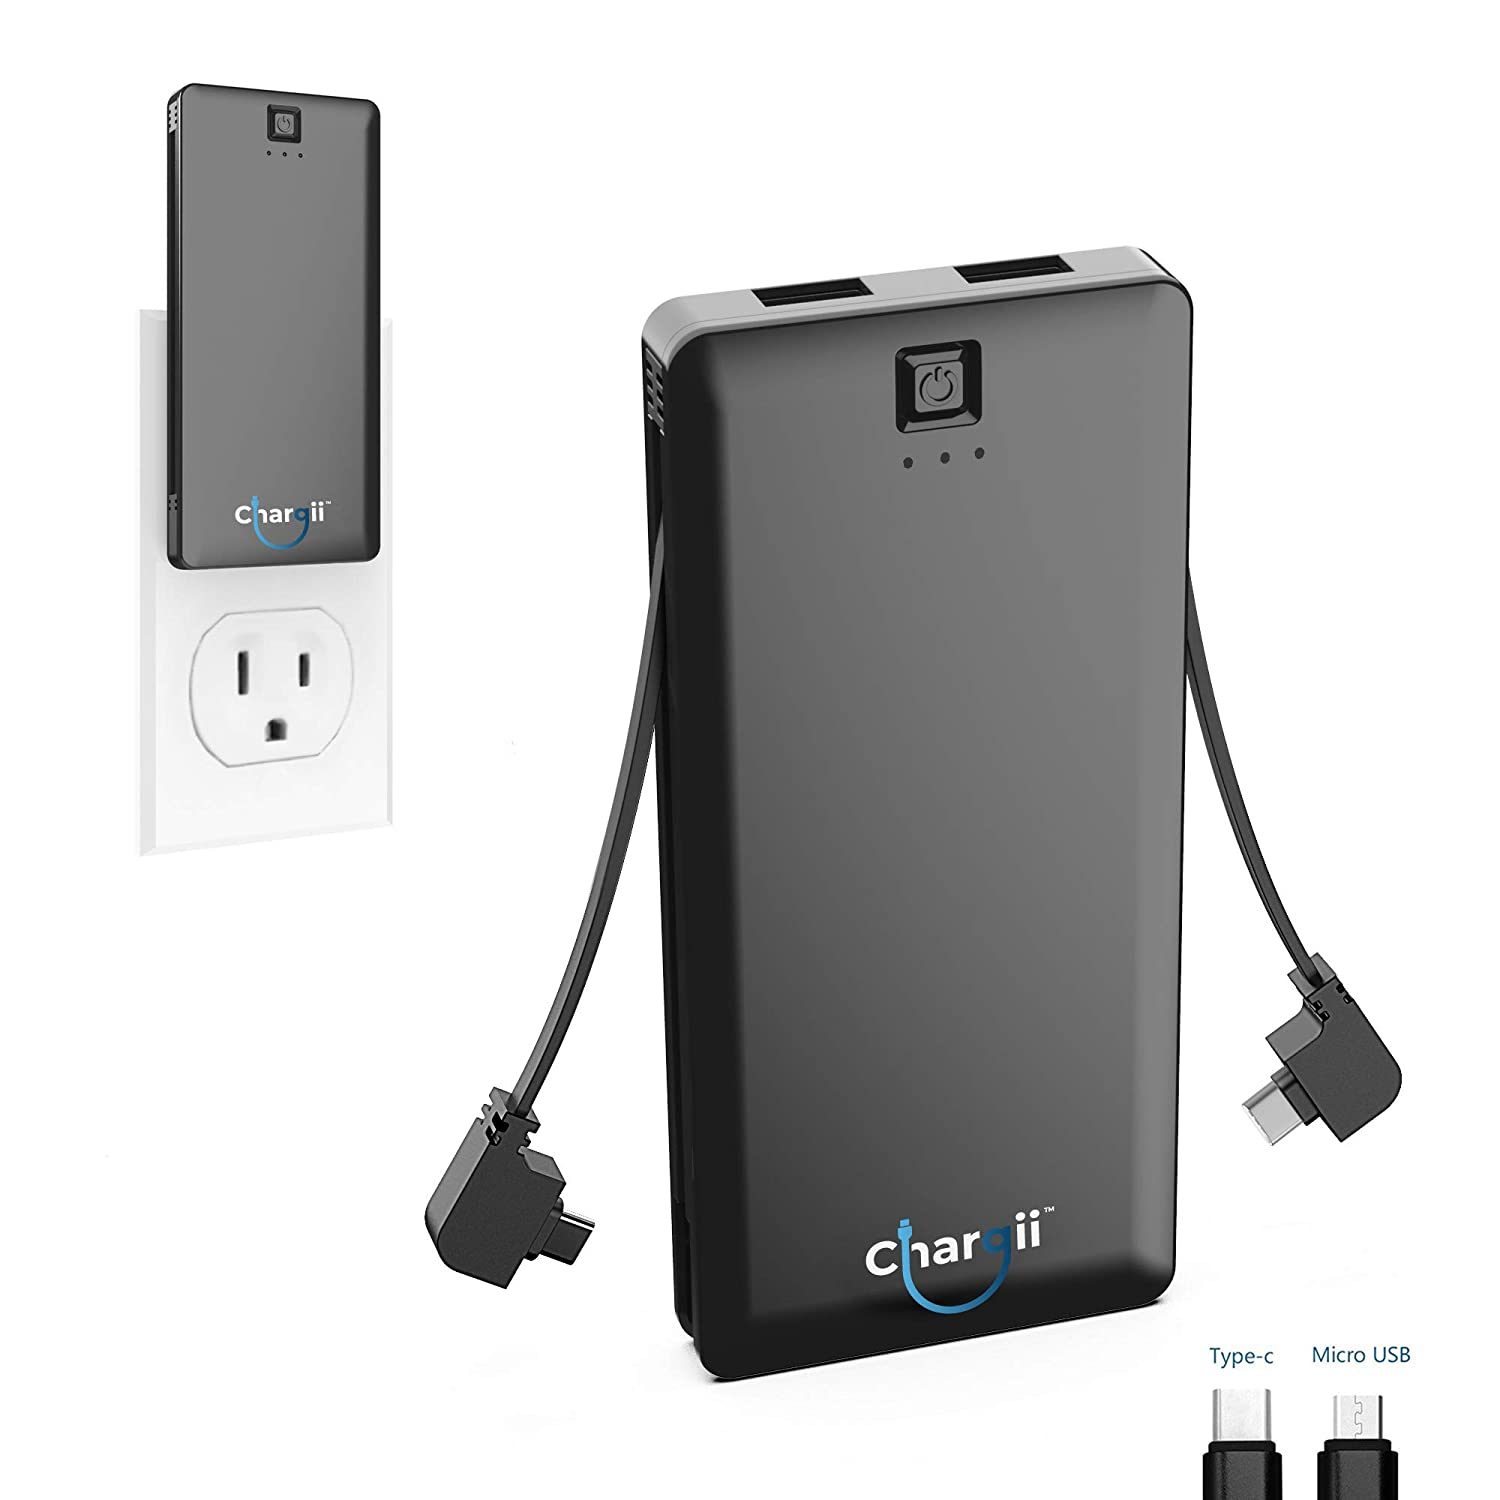 Chargii | Apple Power Bank | All-in-One Portable Charger | Cell Phone  Battery Backup | Built-in Wall Plug AC Adapter, Apple & Micro USB Cables |  2 USB